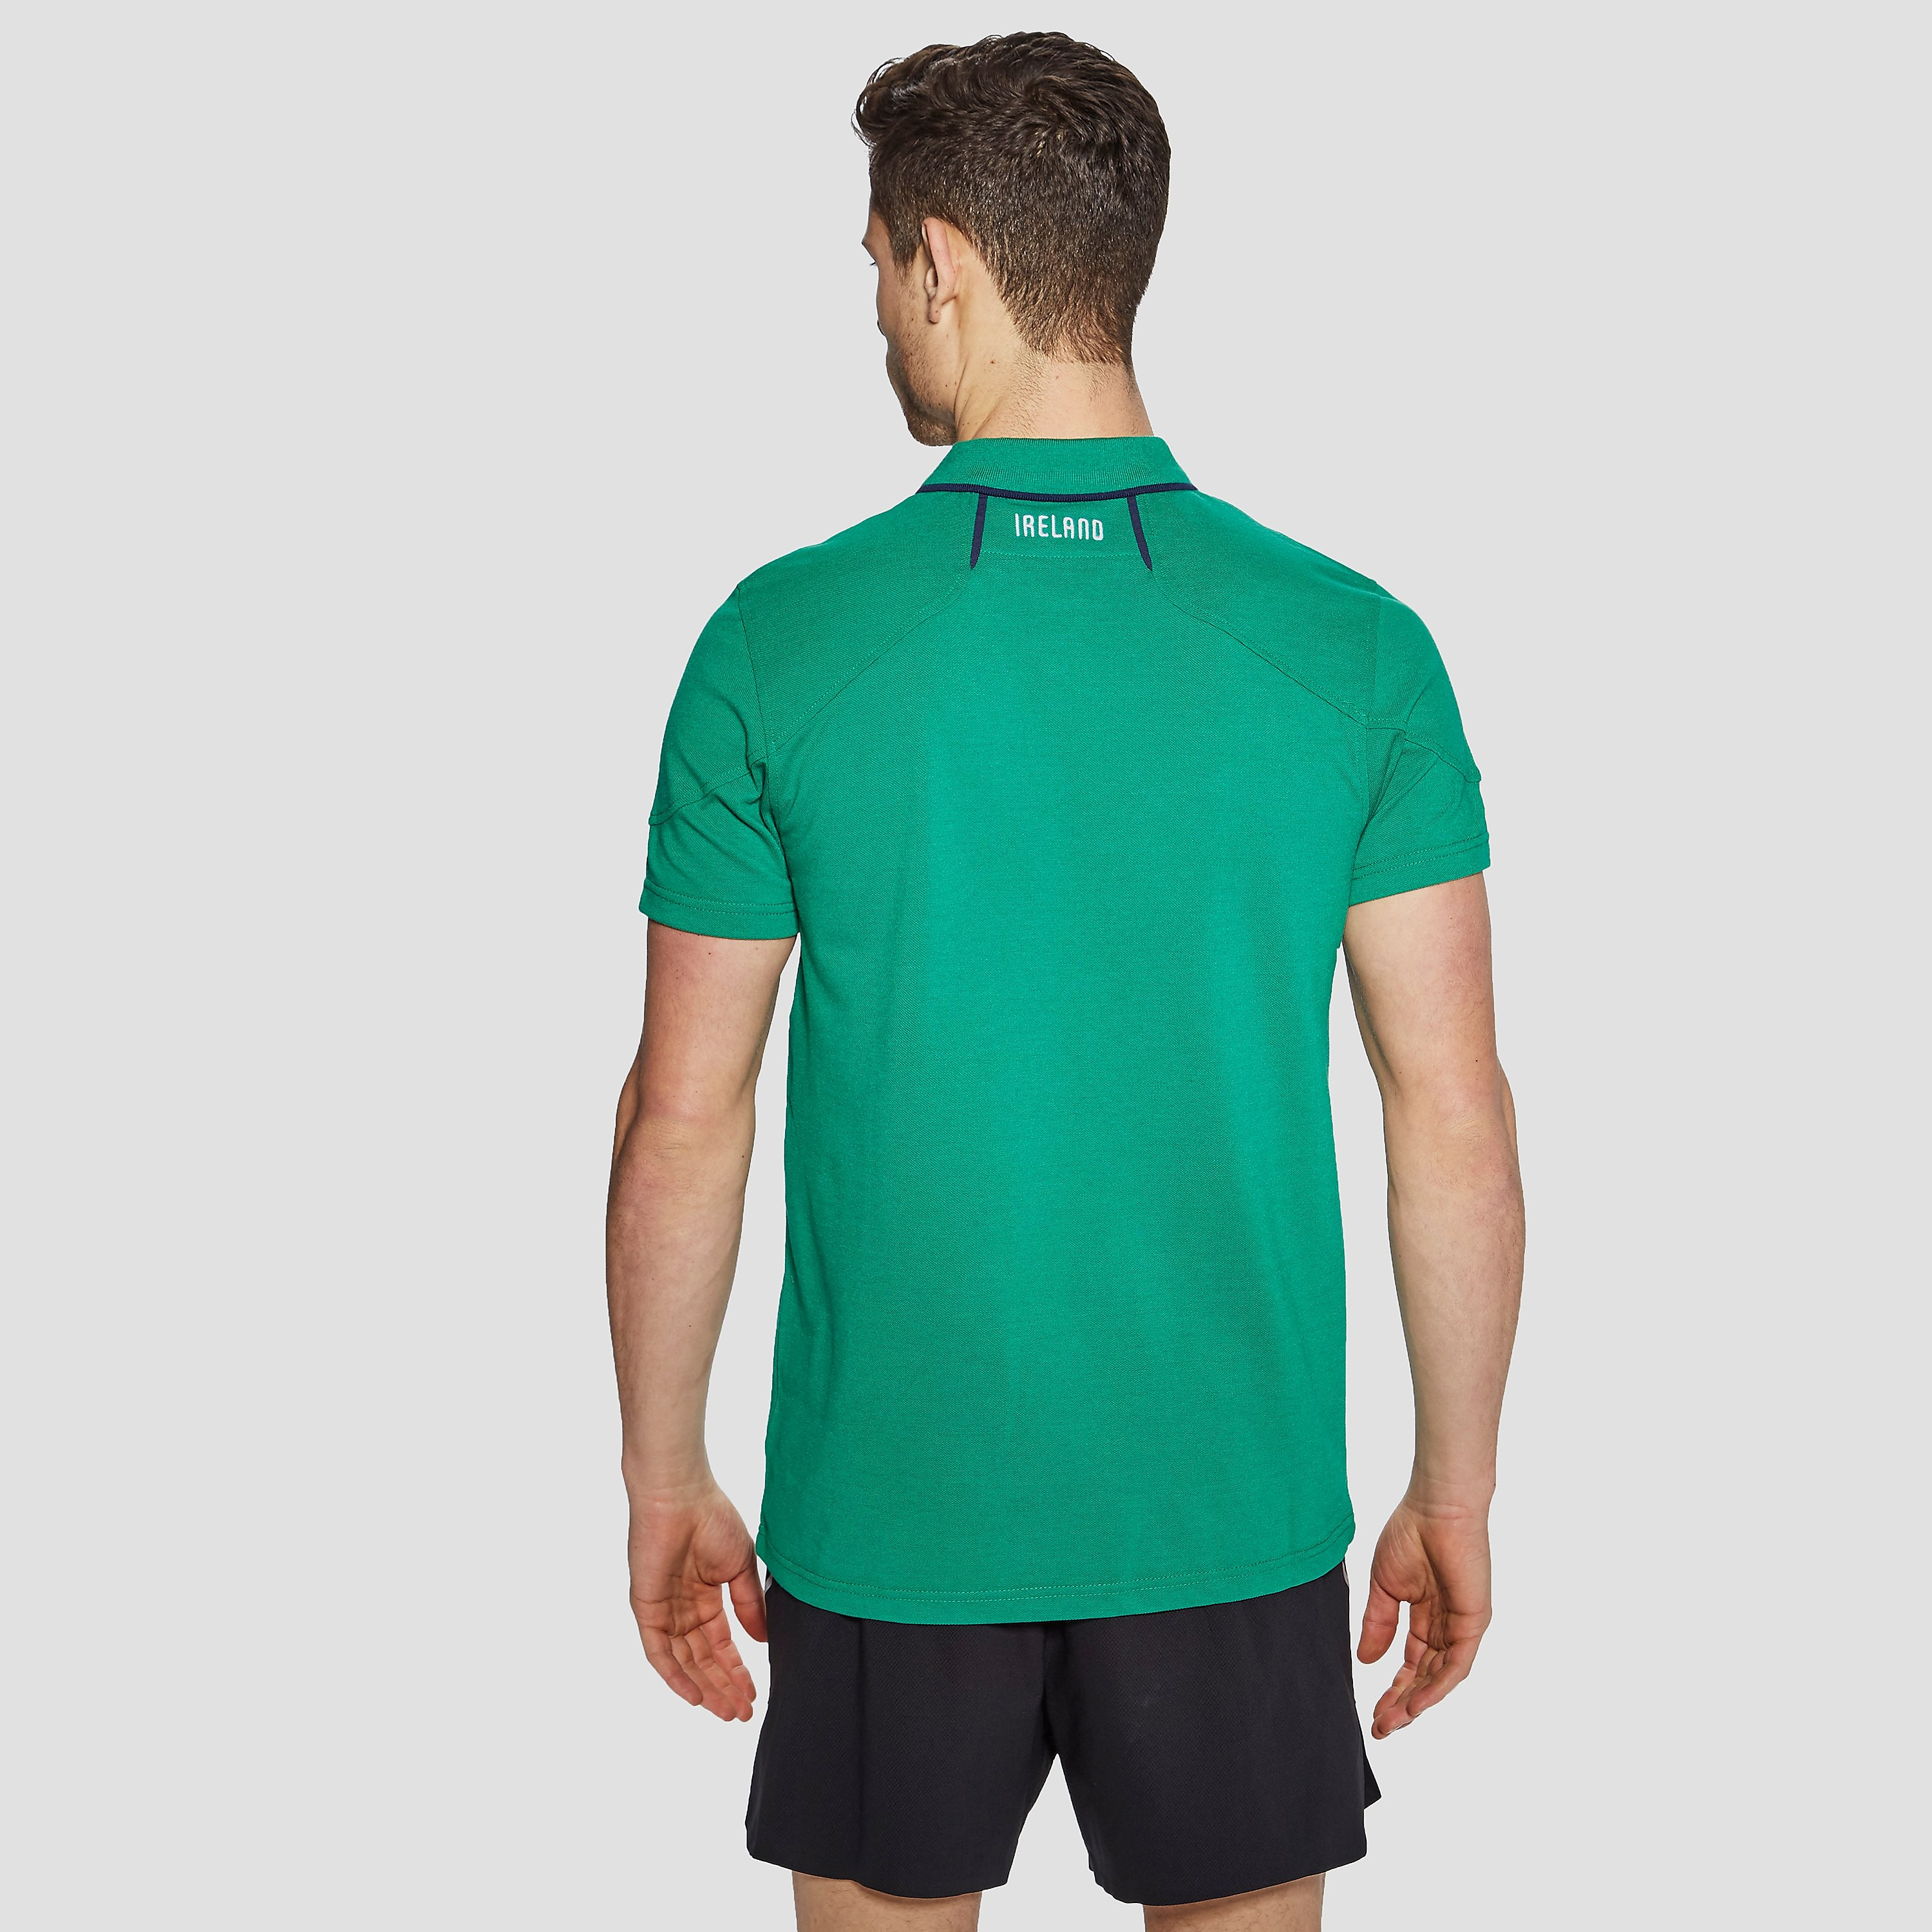 Canterbury Ireland Rugby Polo Shirt